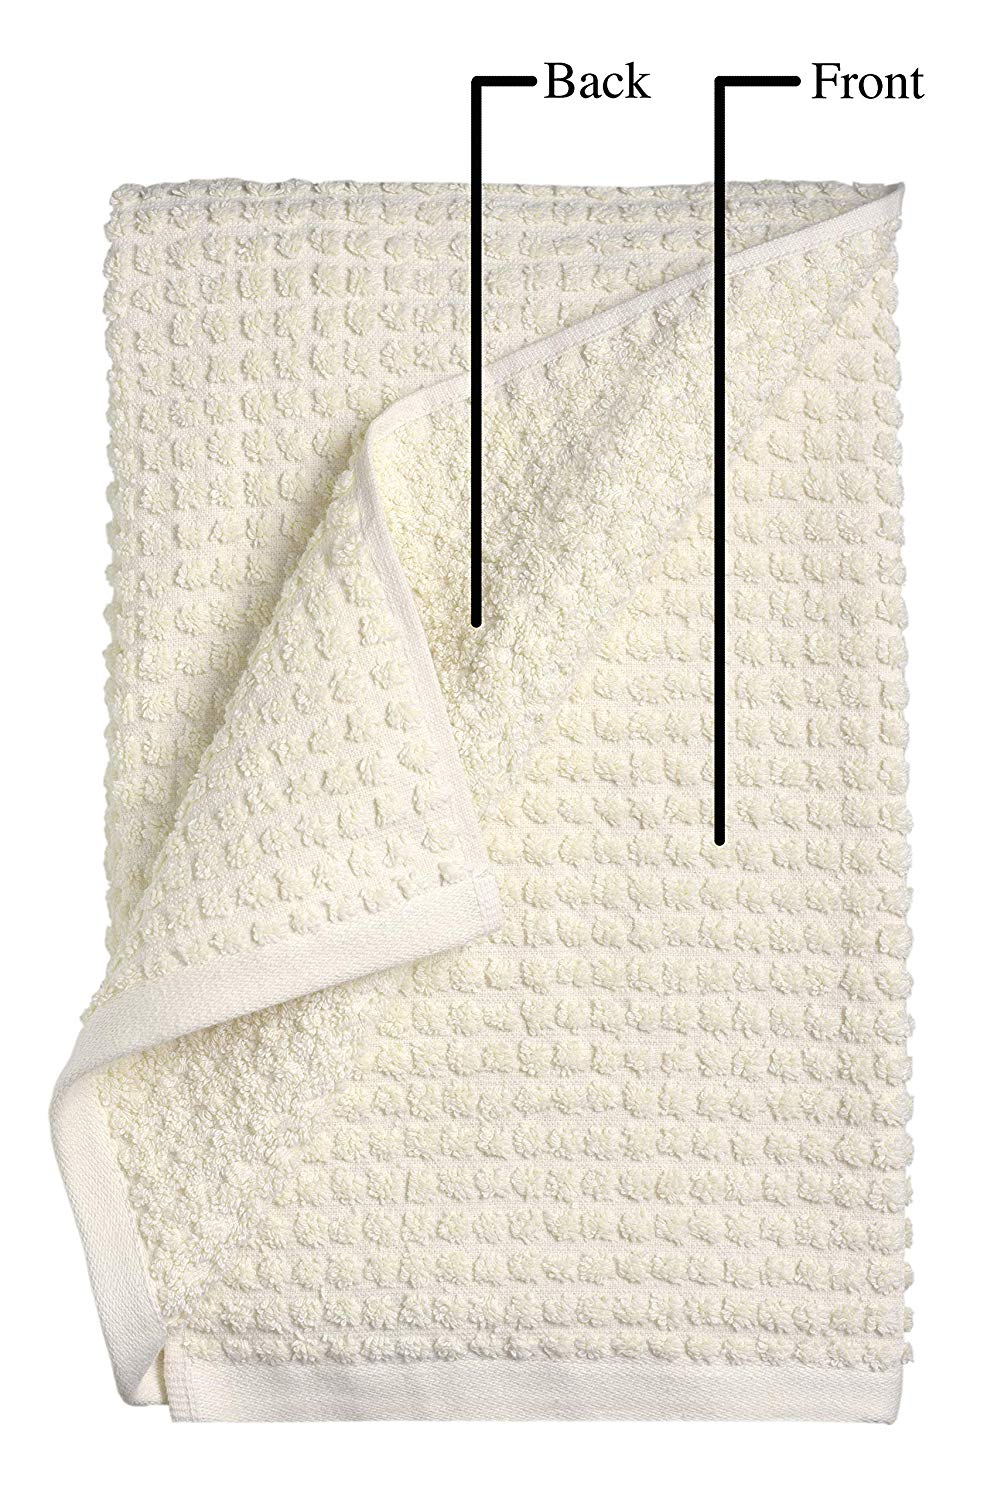 100% Organic Cotton Wash Cloths Set (12 piece) - My Simple Changes